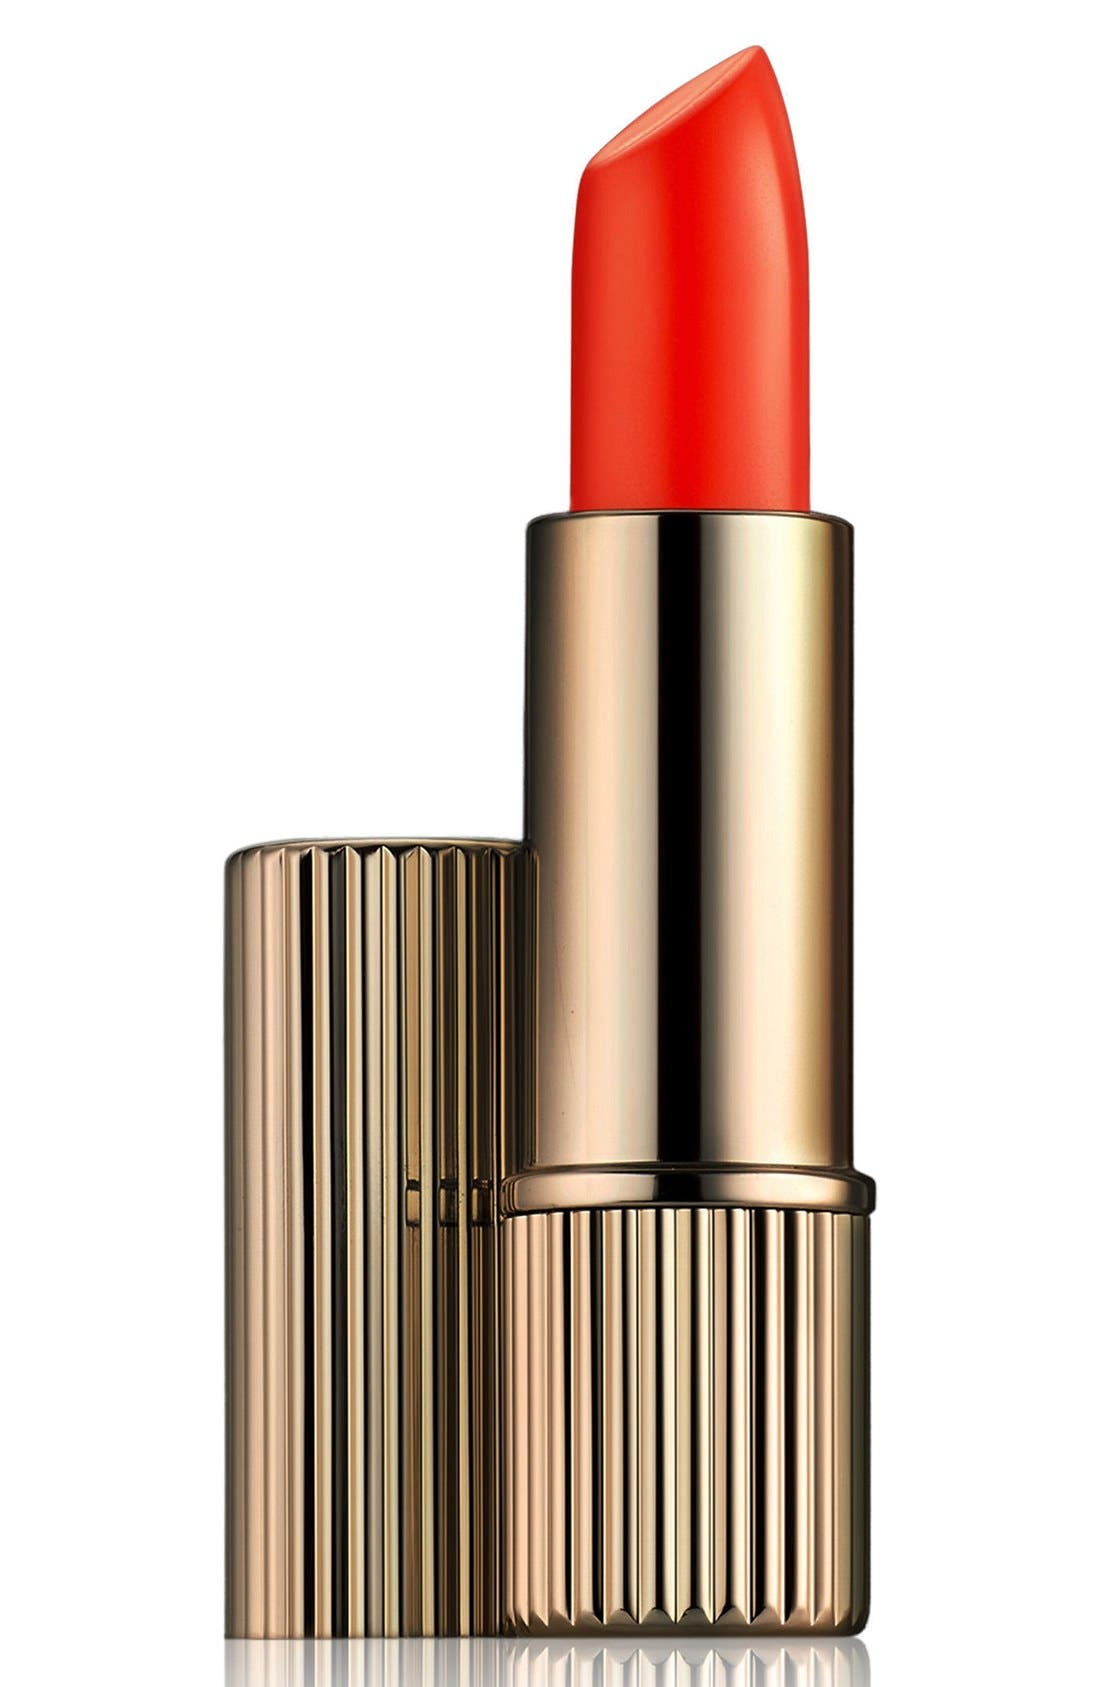 Victoria Beckham Chilean Sunset Lipstick in Gold Case,                             Main thumbnail 1, color,                             600